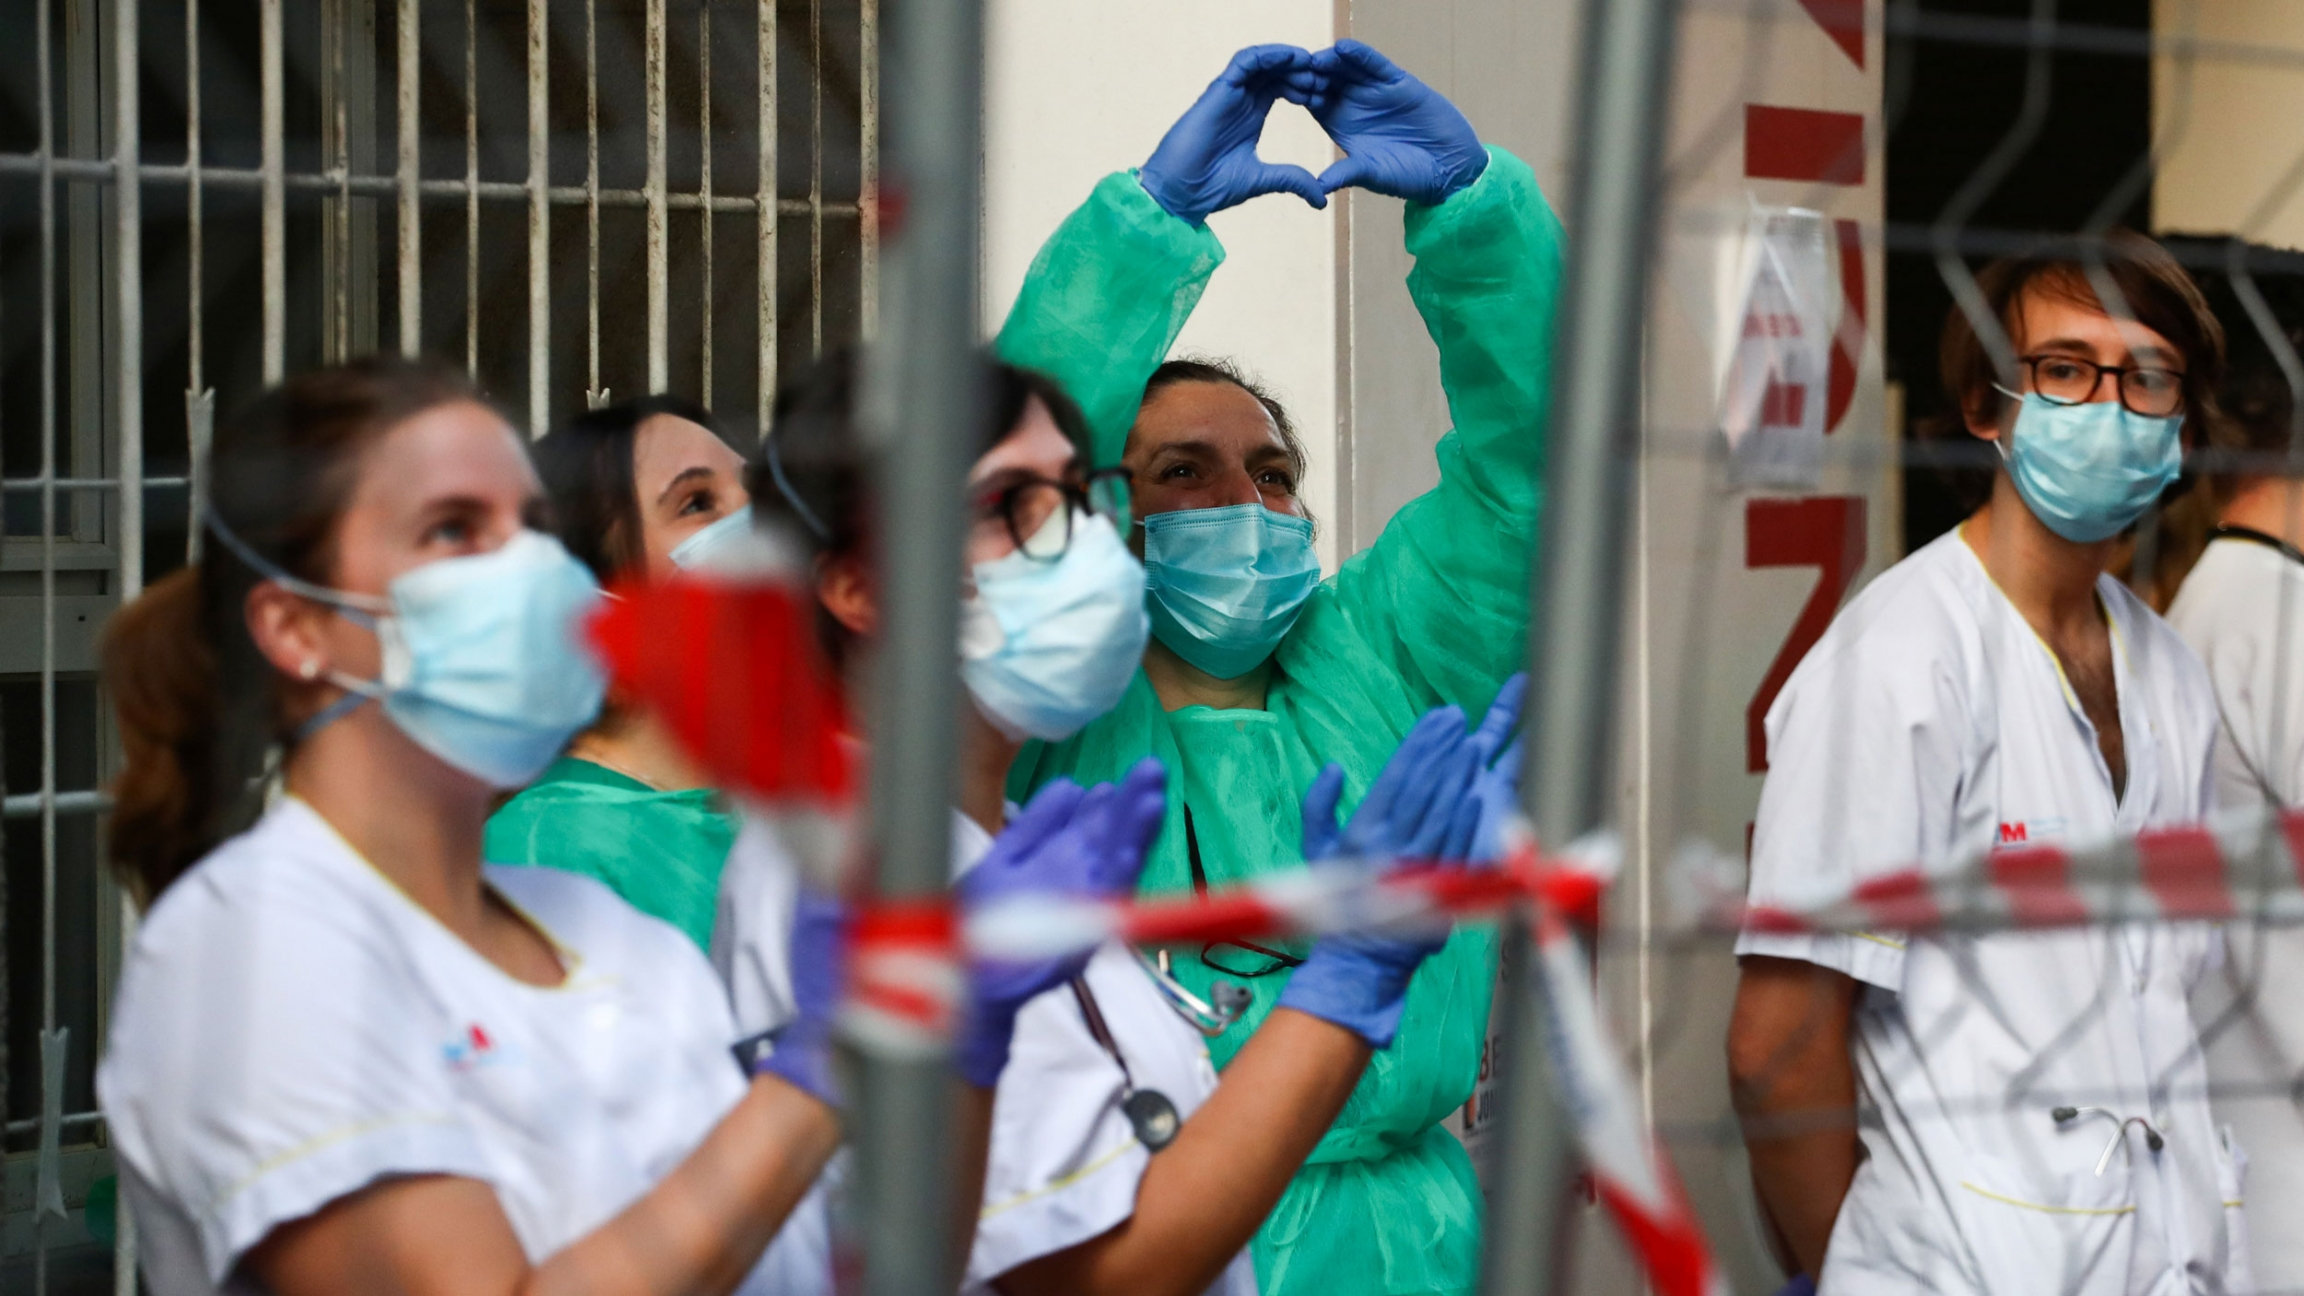 Several health care workers are shown wearing protective suits and one woman making a heart shape with her hands.